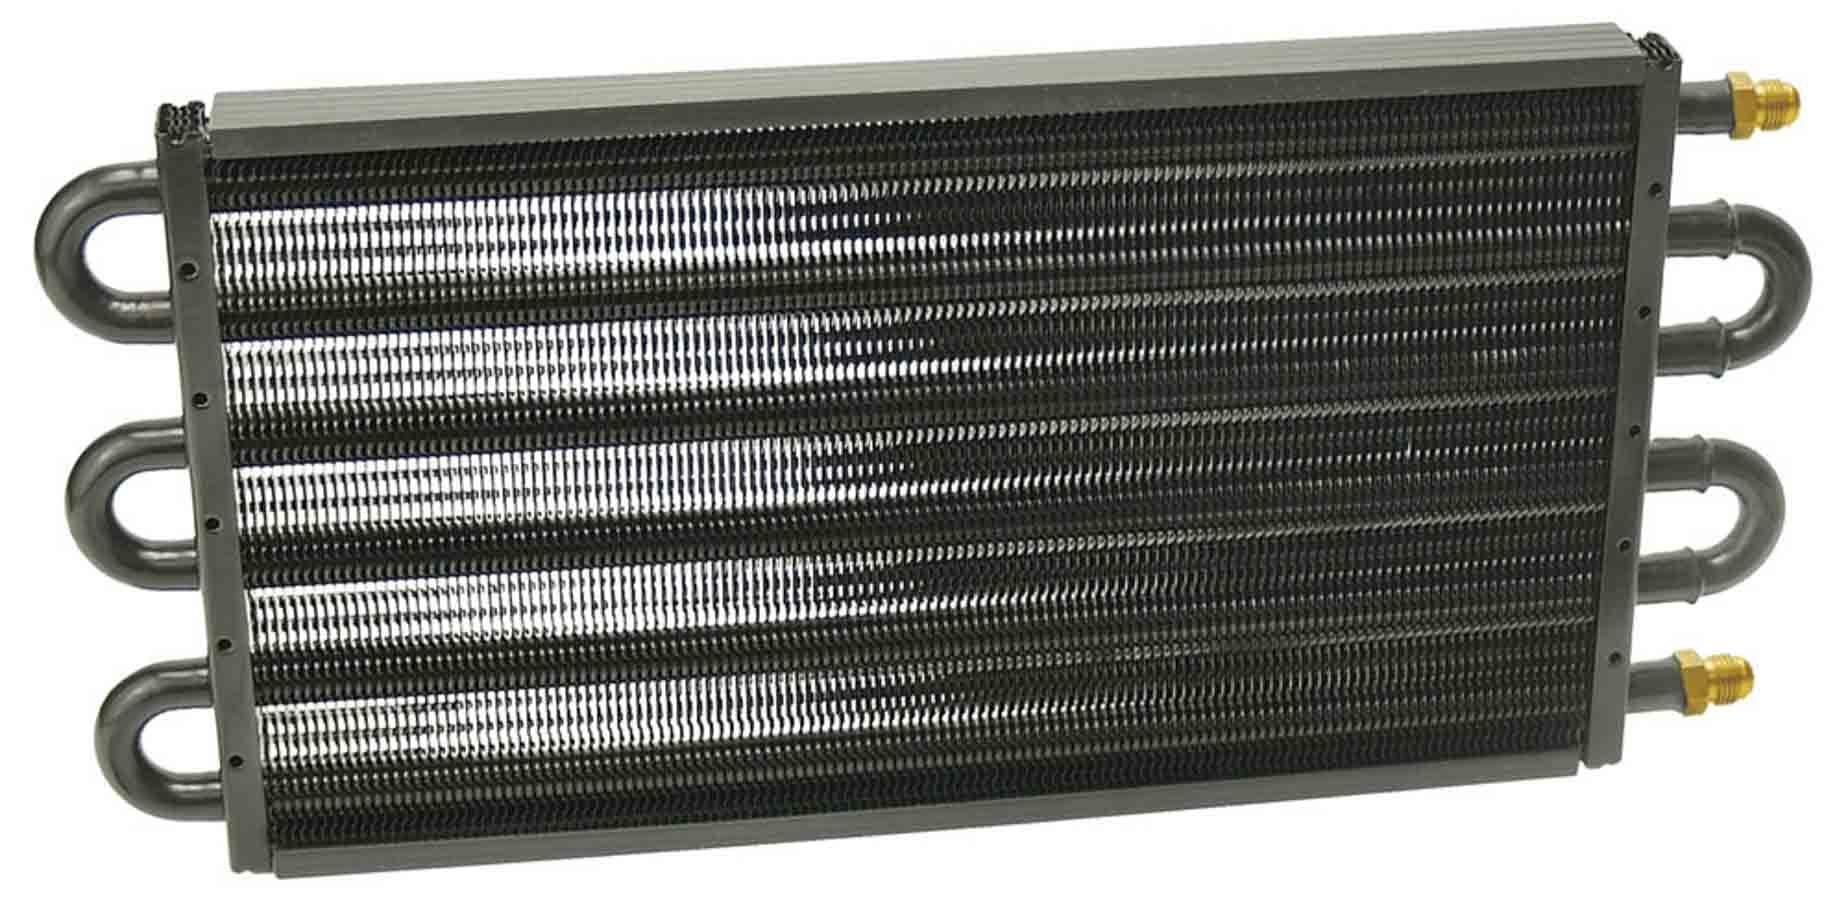 Derale 13313 Fluid Cooler, 7000 Series, 17-1/2 x 7-5/8 x 3-5/8 in, Tube Type, 6 AN Male Inlet / Outlet, Aluminum / Copper, Black Powder Coat, Universal, Each